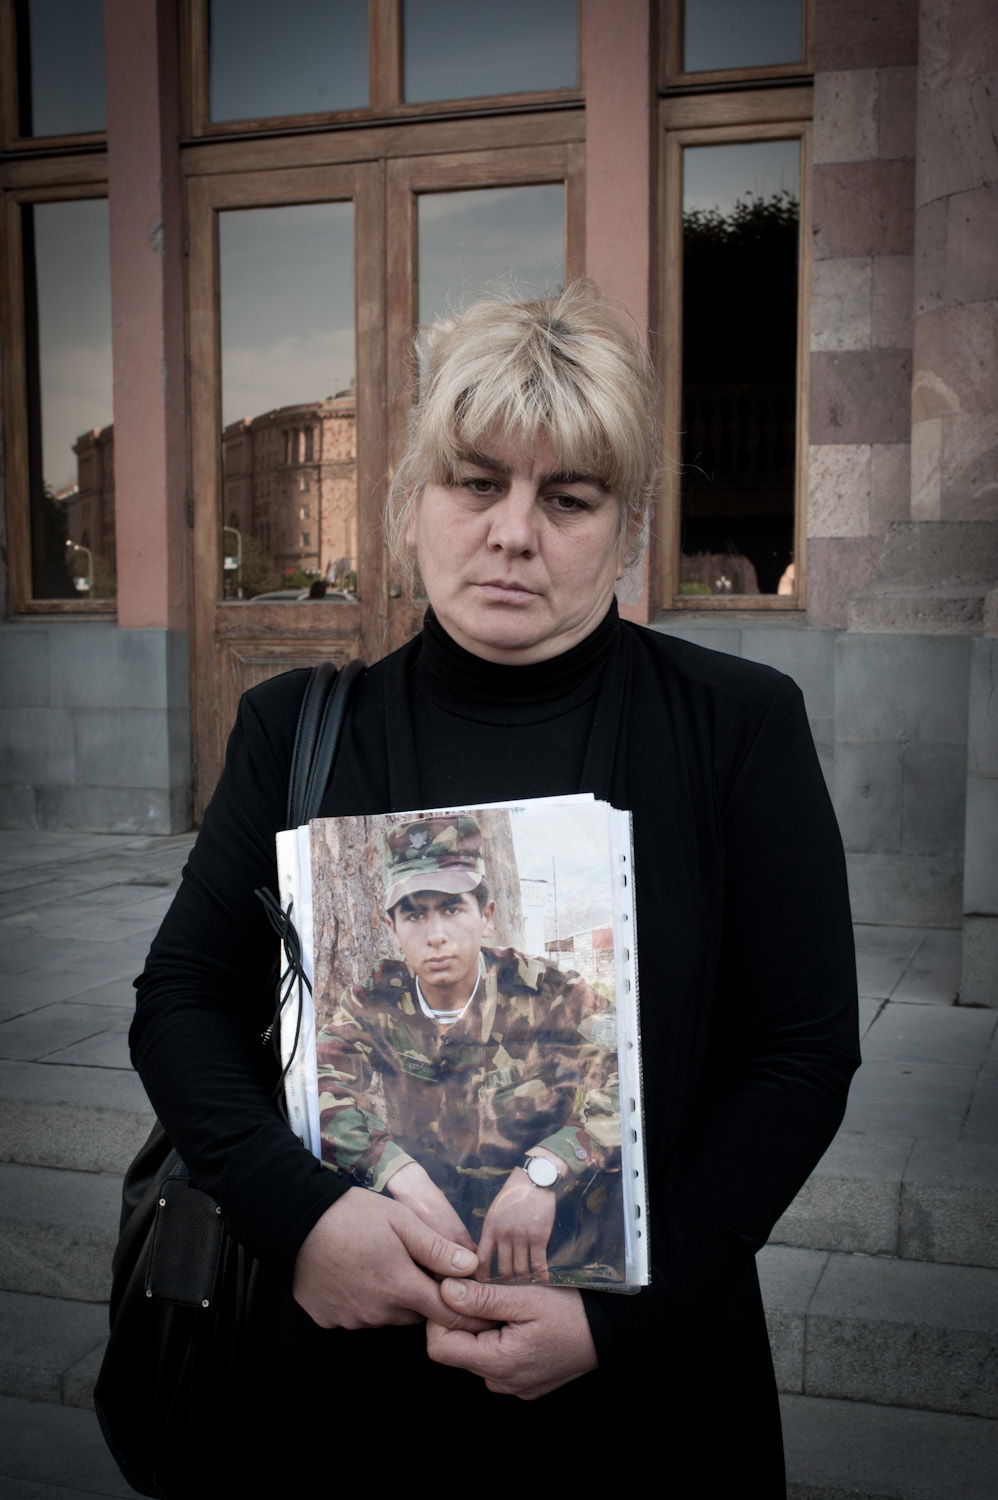 Irina Ghazaryan's son Arthur died in 2010 during his military service. The military contends that the nineteen year old died of a brain tumor. The Ghazaryans believe their son was killed.